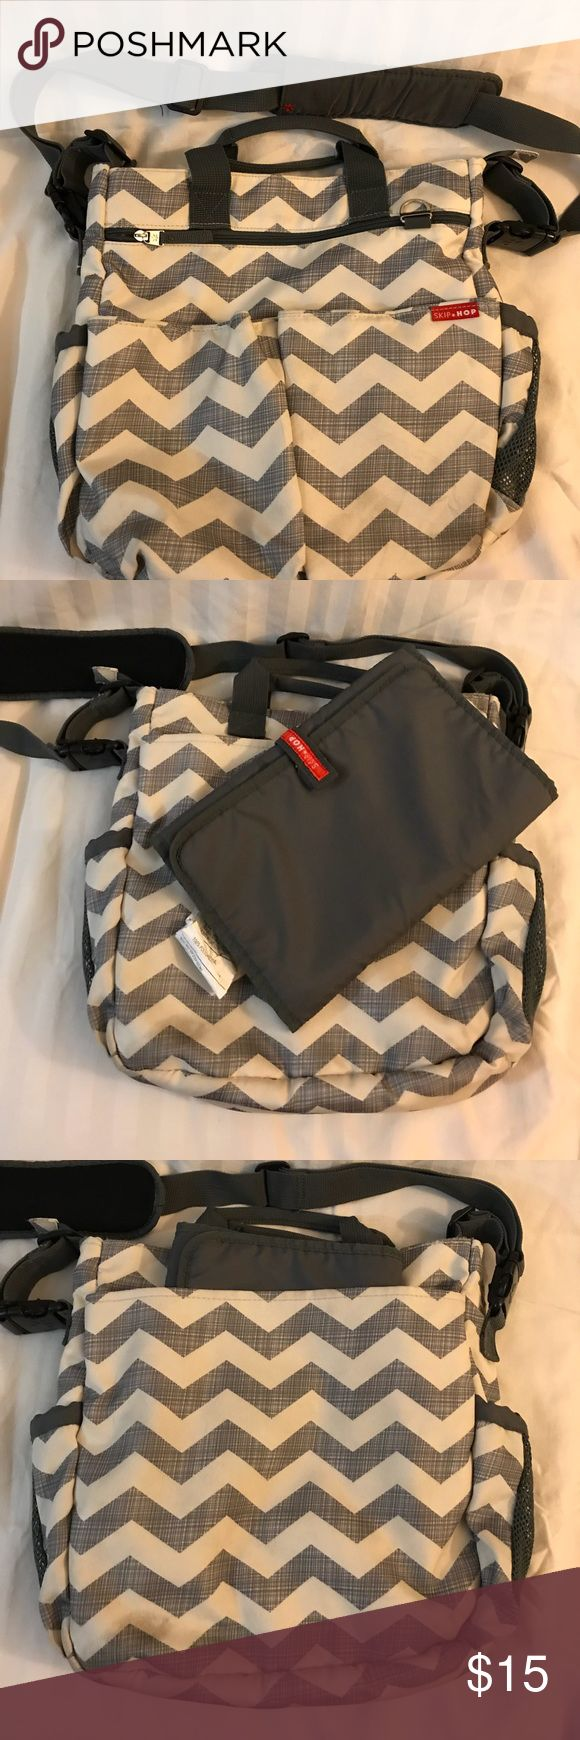 Skip Hop Chevron Diaper Bag Skip Hop Diaper bag in grey chevron print. Comes with changing pad, two drink pockets in either side, Diaper pockets inside and additional side pouches. Some small wear on outside but all shown in pictures! Skip Hop Bags Baby Bags